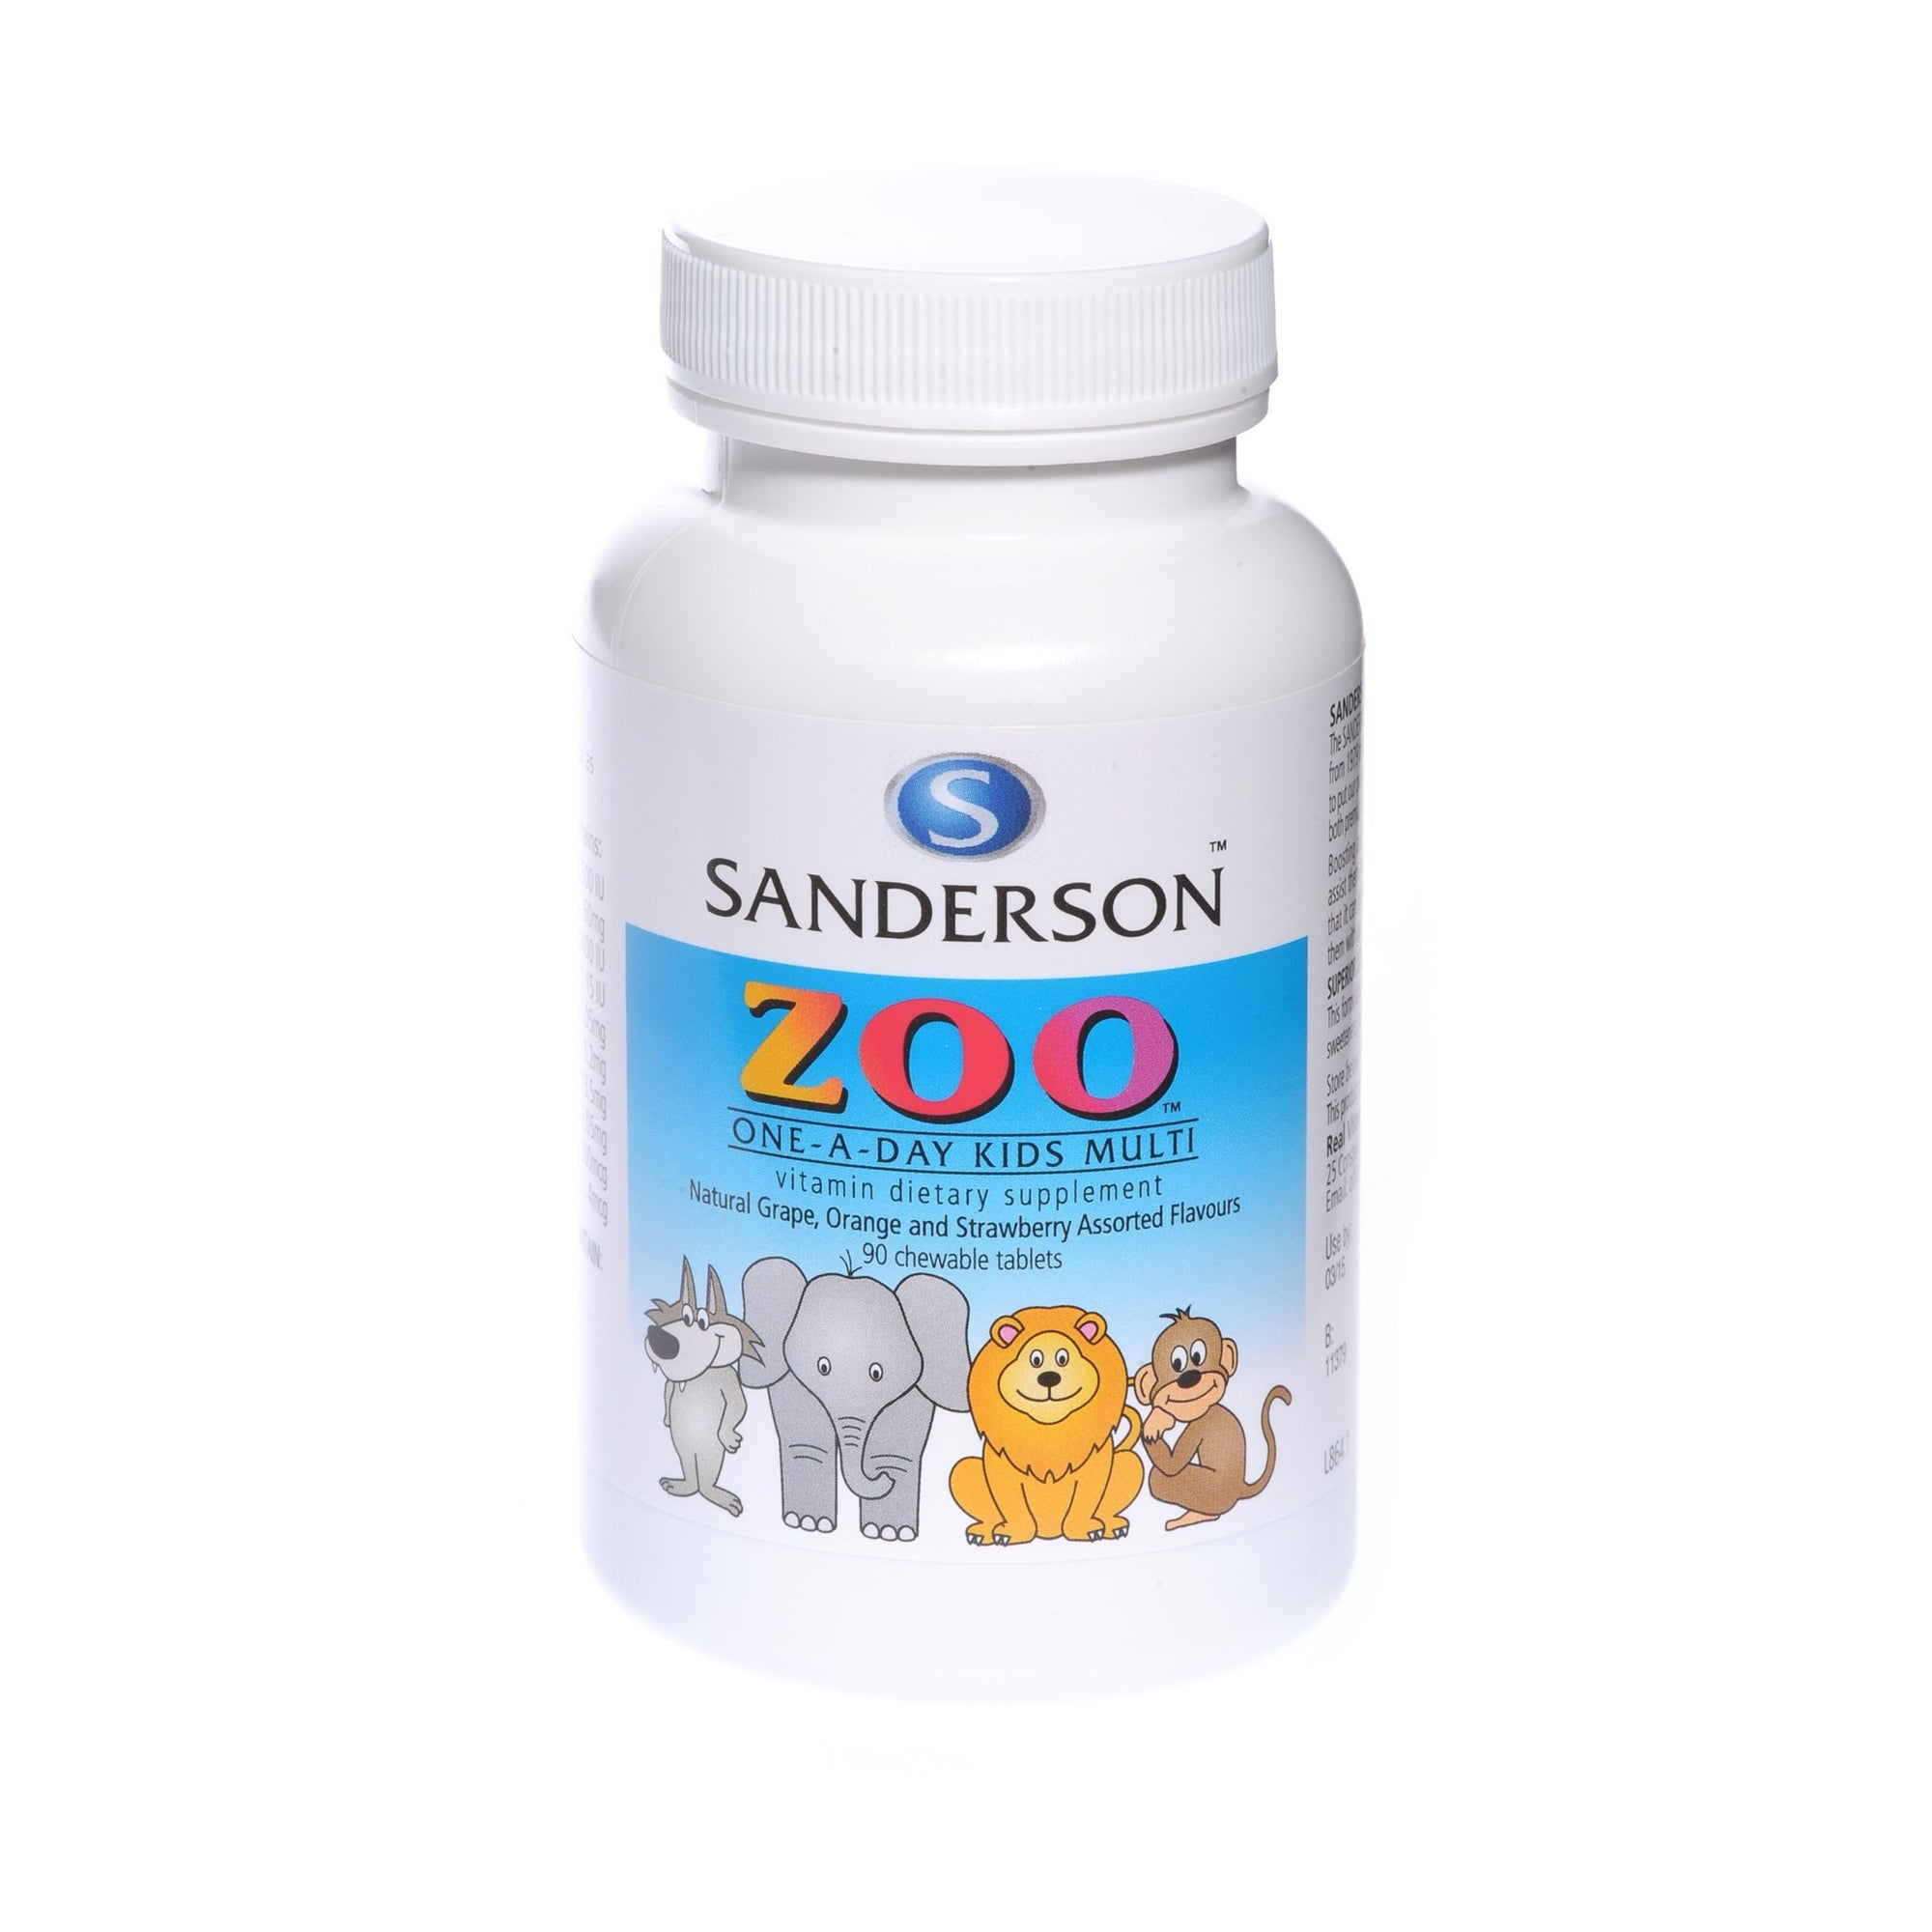 Sanderson Zoo Kids Multi Chewable 90 Tabs